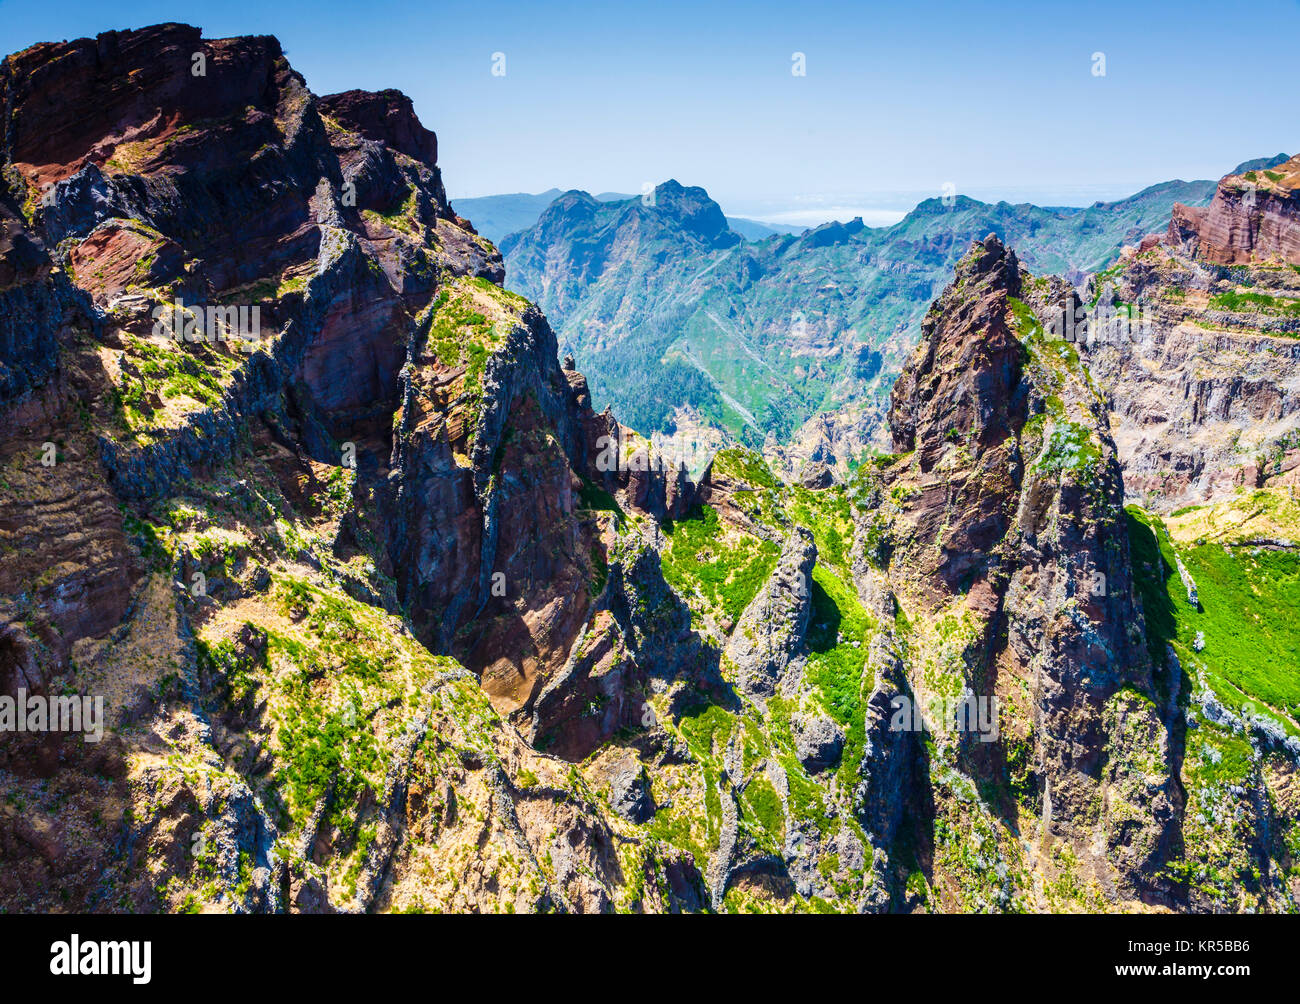 Mountain landscape. Pico do Arieiro area. Madeira, Portugal, Europe. - Stock Image